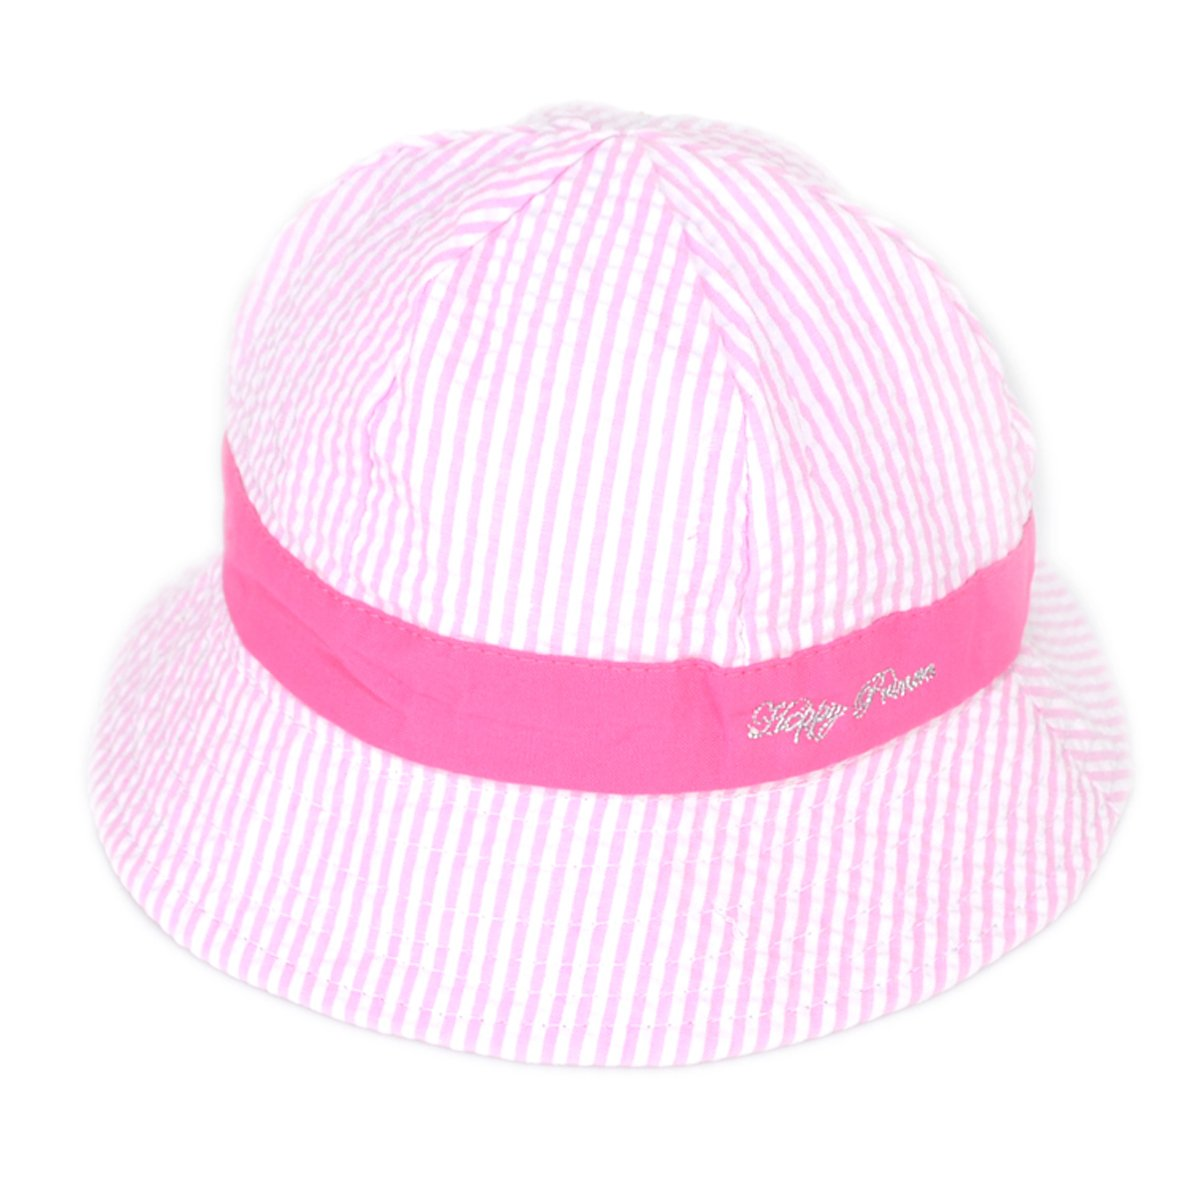 010182cc Millya Infant Baby Toddler Unisex Solid Brim Stripe Sun Protection Hat 100%  Cotton (Pink-brim): Amazon.co.uk: Baby